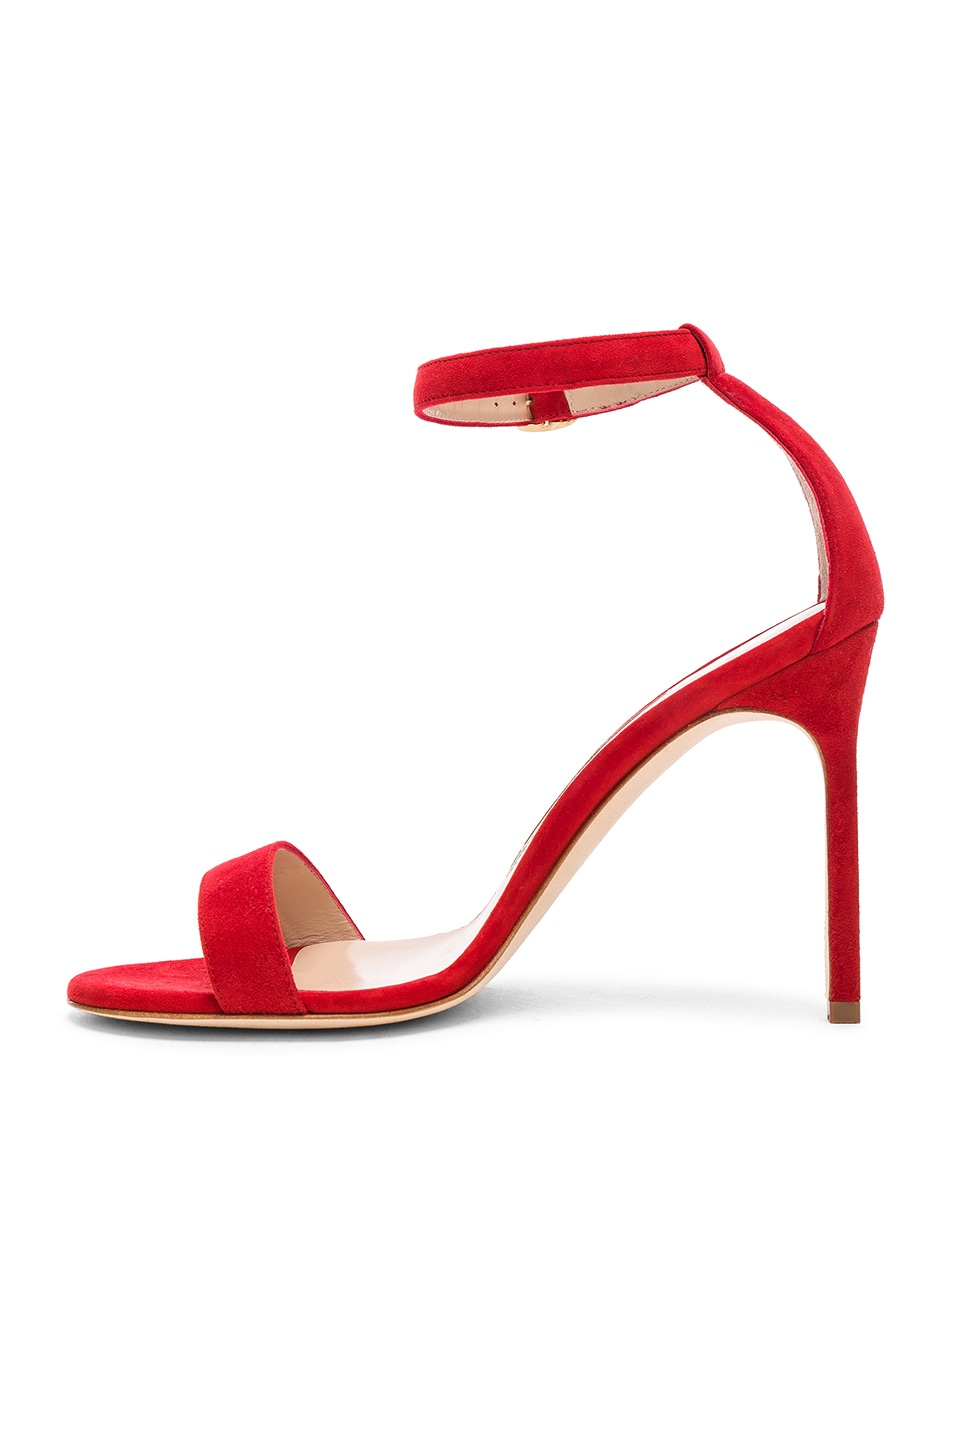 Image 5 of Manolo Blahnik Suede Chaos 105 Sandals in Red Suede